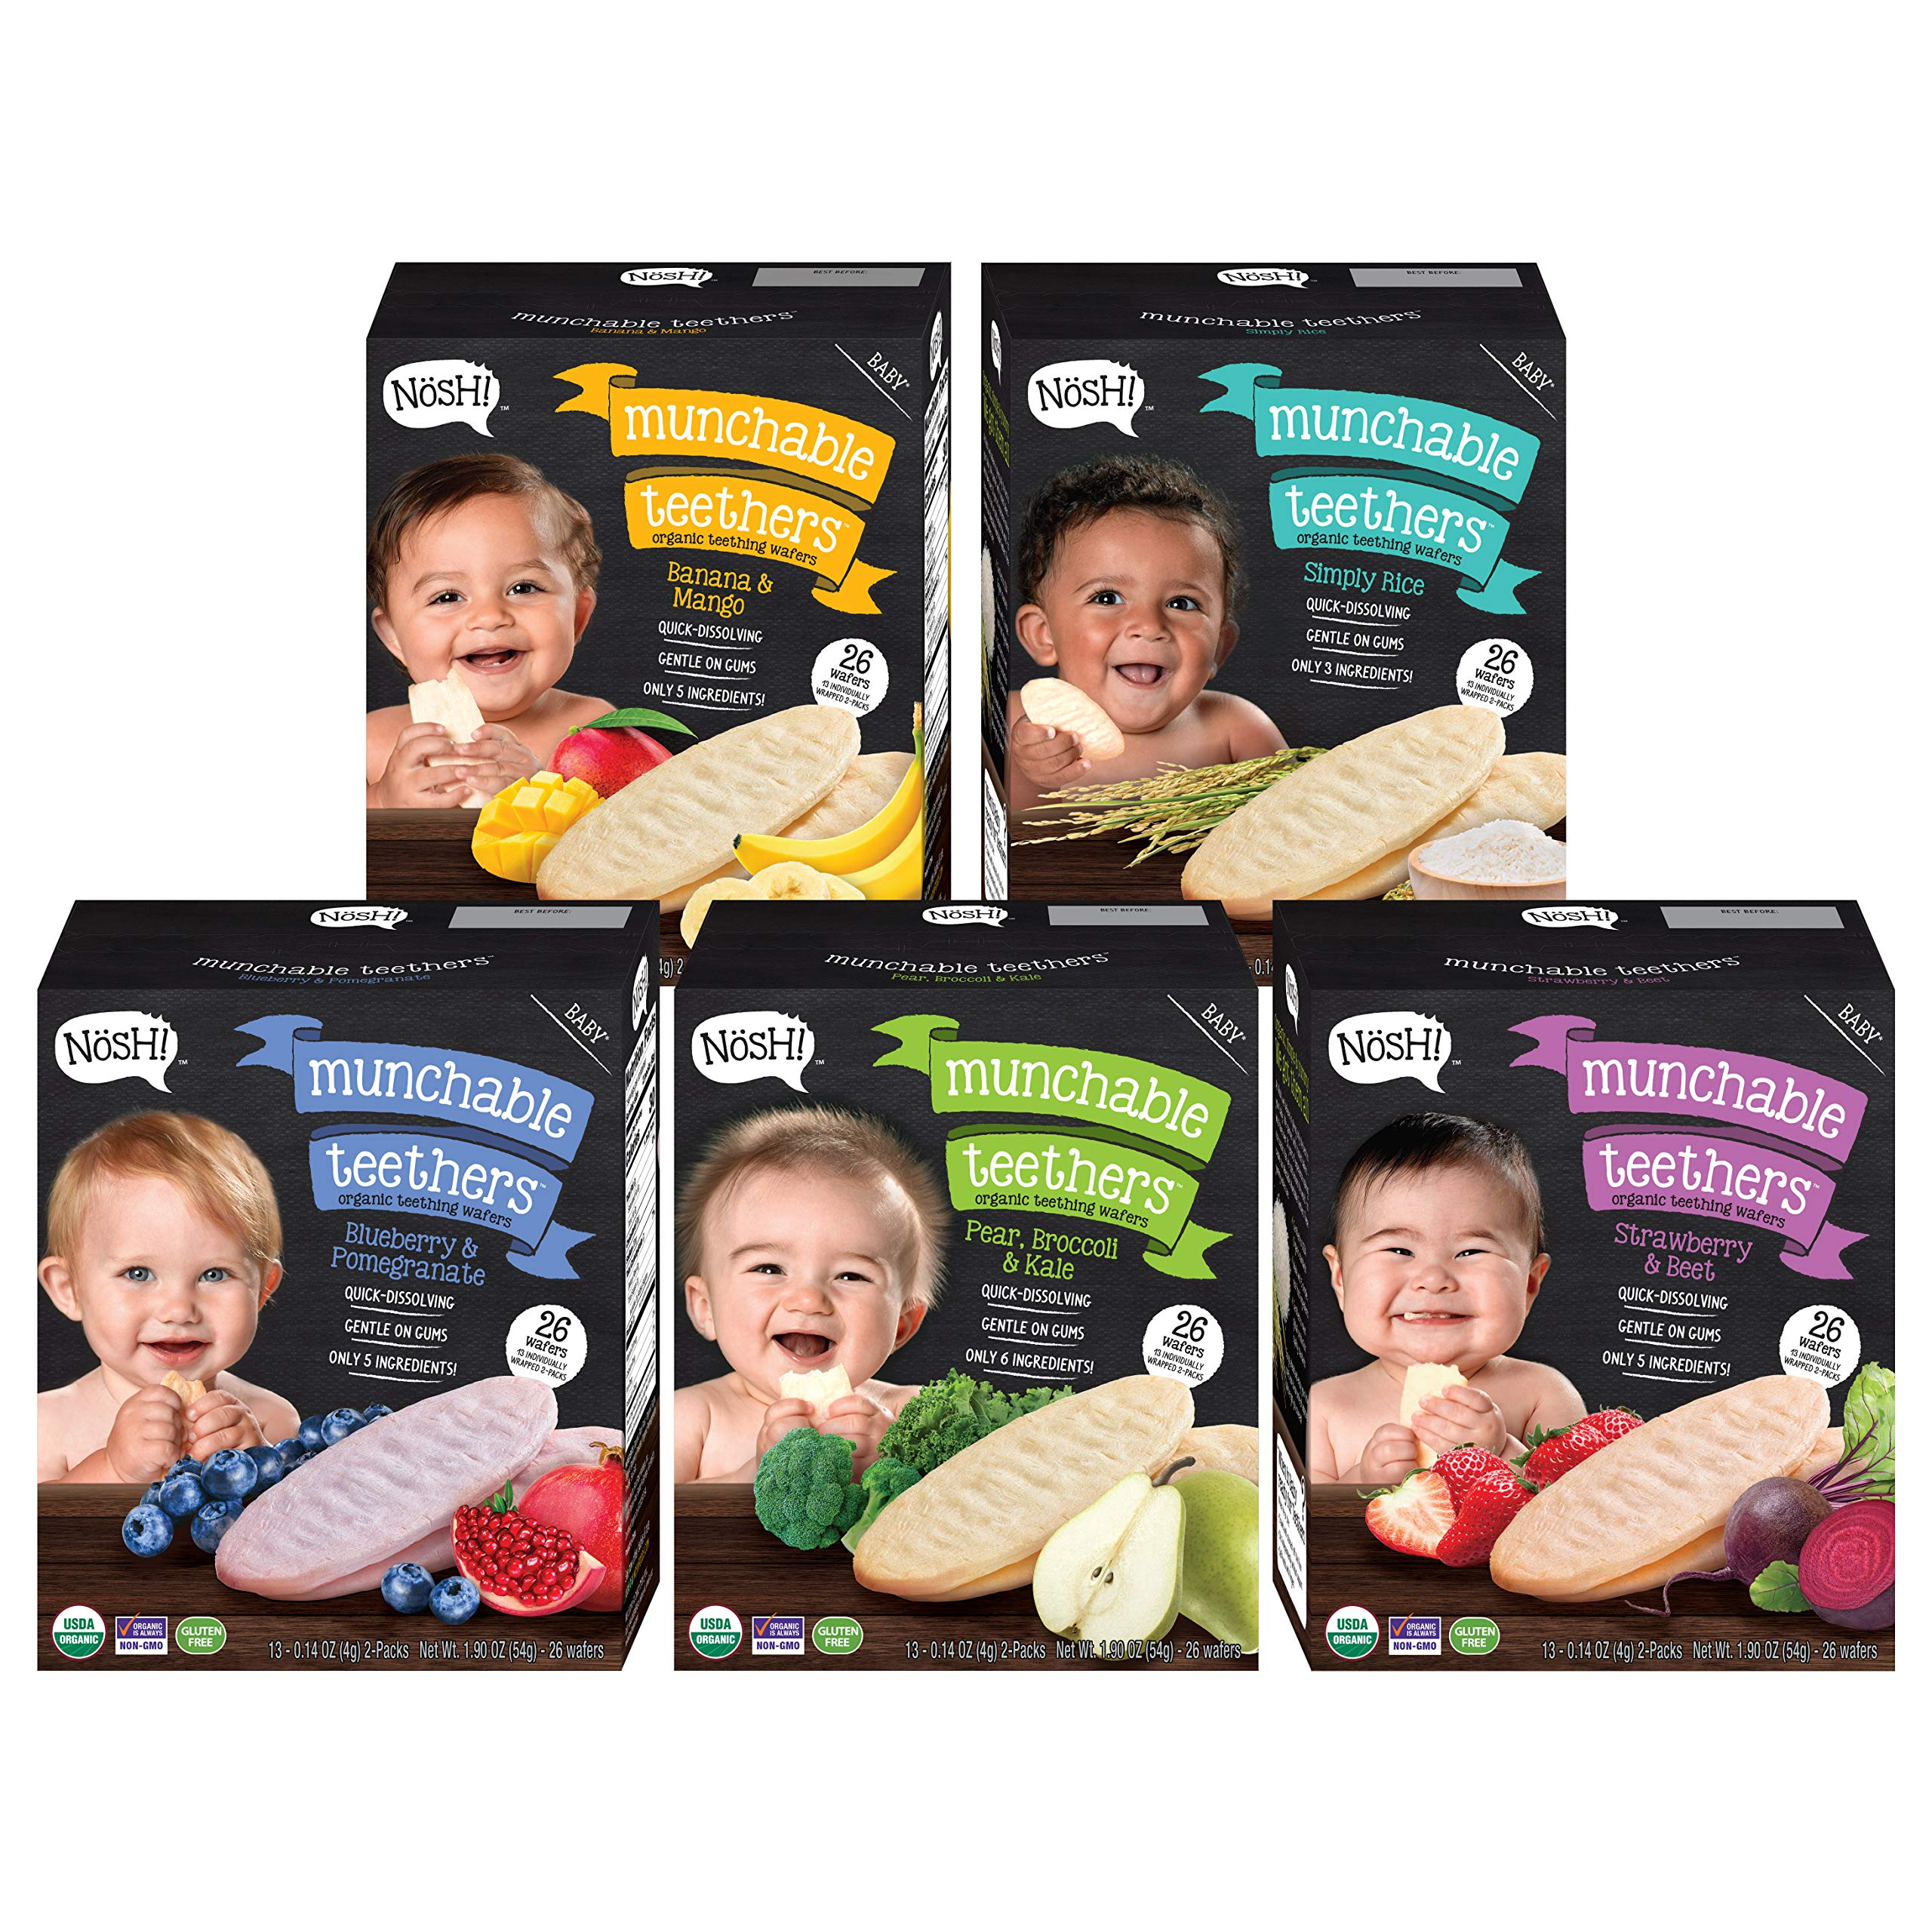 Nosh Baby Munchable Teethers Organic Rice Teething Wafers, 26 Piece, Variety Pack (Pack of 5) by nosh